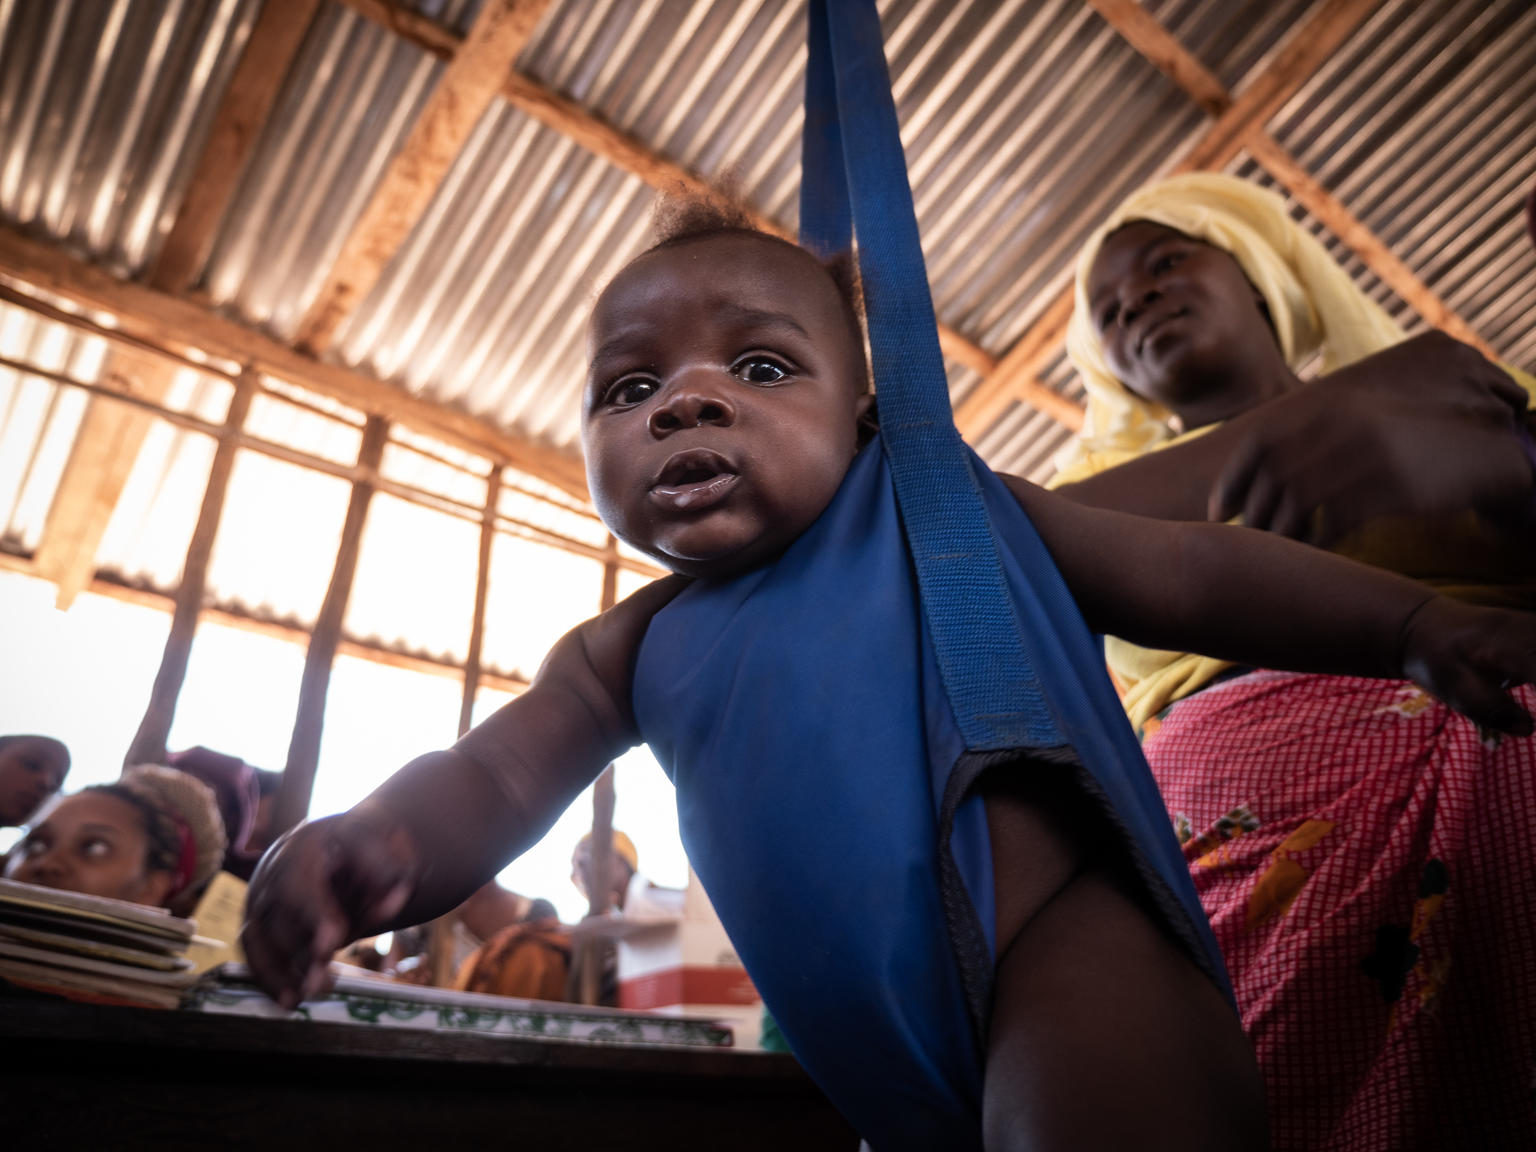 On 27 September, 2019, a boy is weighed, as his mother looks on, during a checkup at a community outreach medical clinic in a village near Mecufi, northern Mozambique.